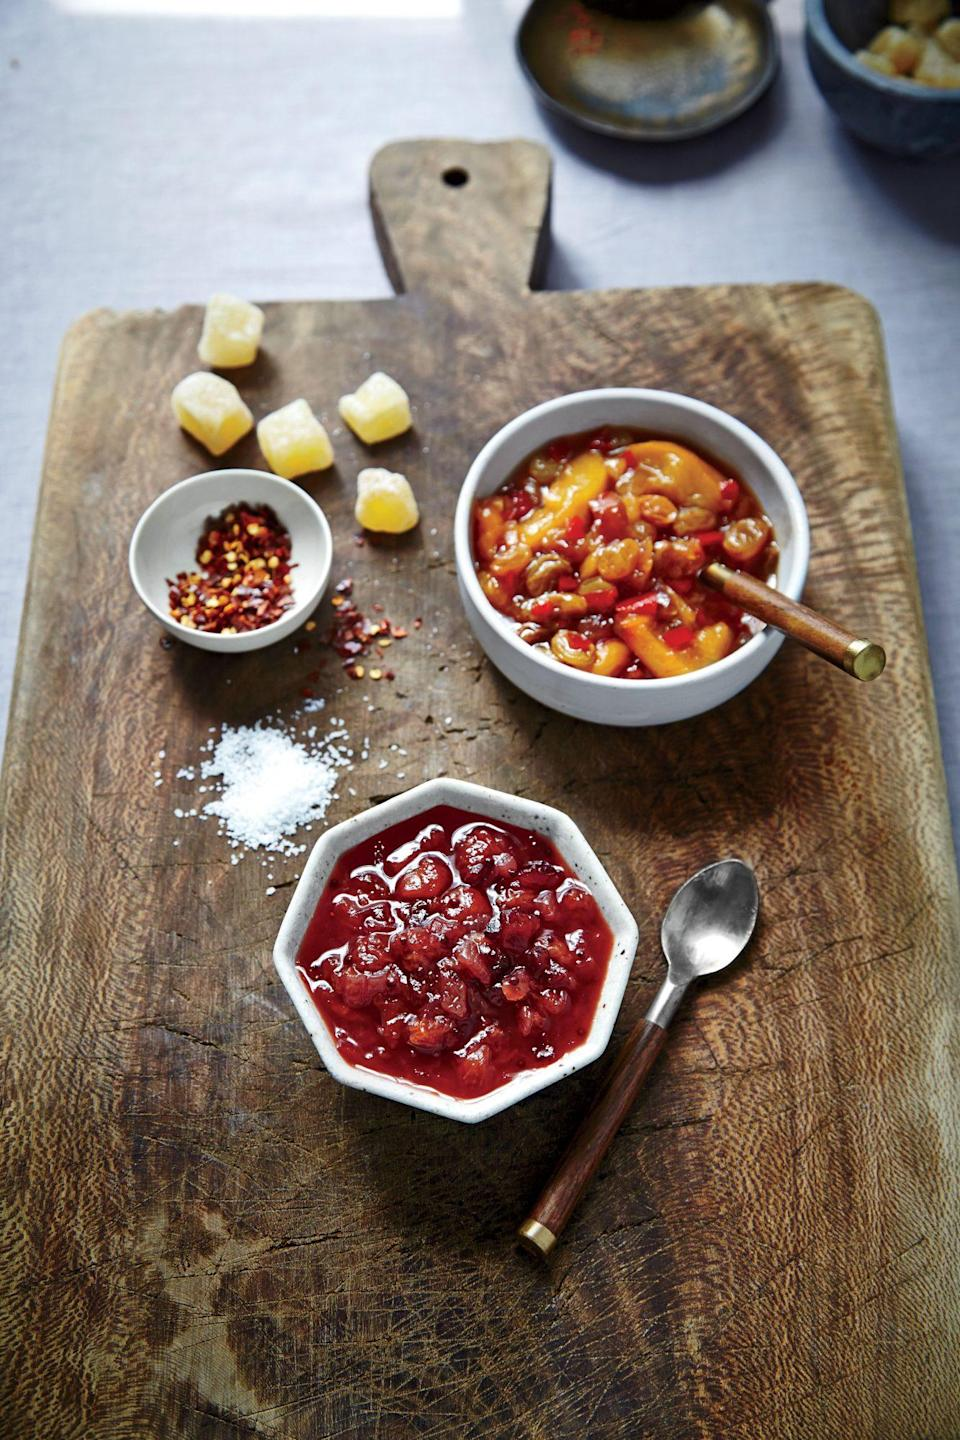 """<p><strong>Recipe: </strong><a href=""""https://www.southernliving.com/recipes/spiced-plum-chutney-recipe"""" rel=""""nofollow noopener"""" target=""""_blank"""" data-ylk=""""slk:Spiced Plum Chutney"""" class=""""link rapid-noclick-resp""""><strong>Spiced Plum Chutney</strong></a> </p> <p>It's spicy, sweet, perfectly seasoned, and you absolutely won't be able to resist anything that's slathered in this standout sauce. You can store it in the fridge for up to three weeks or pop it in the freezer for up to two months.</p>"""